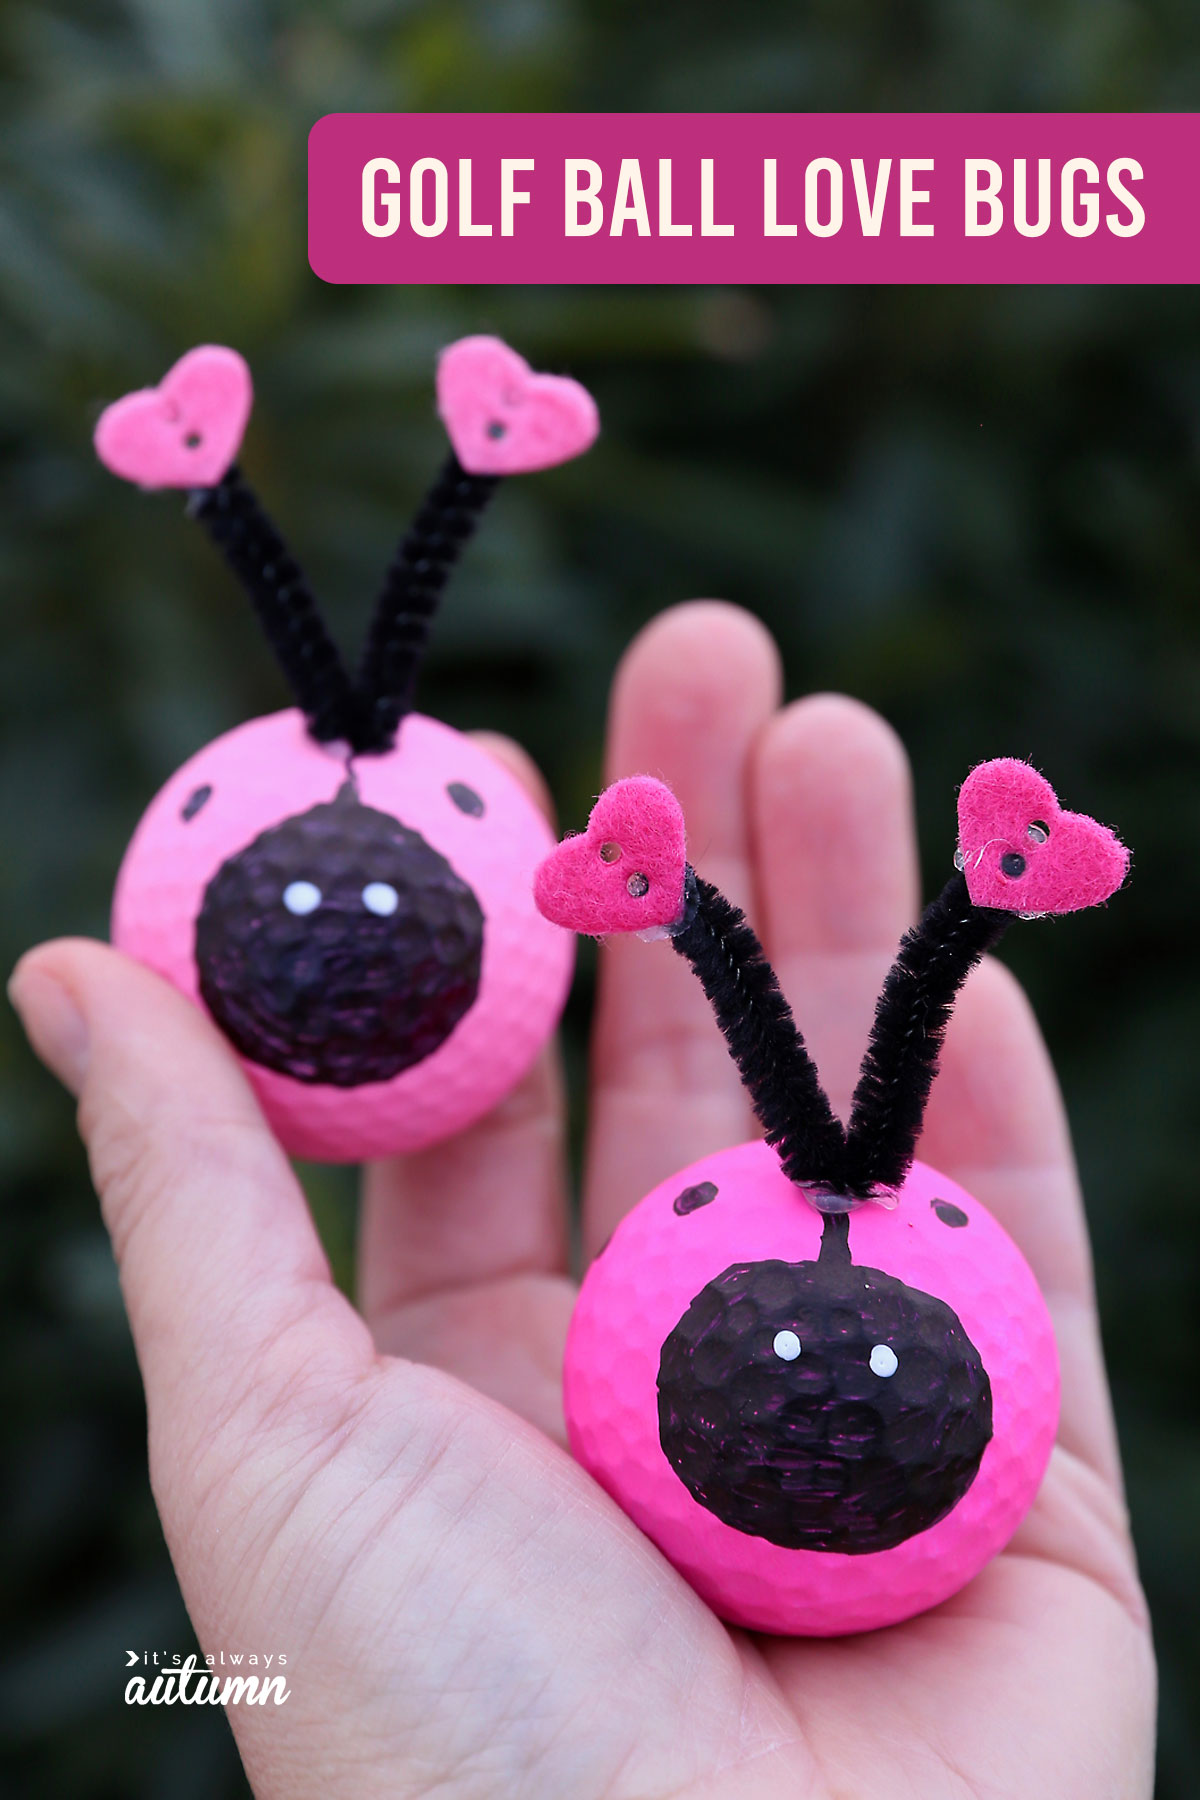 Hand holding love bugs made from golf balls